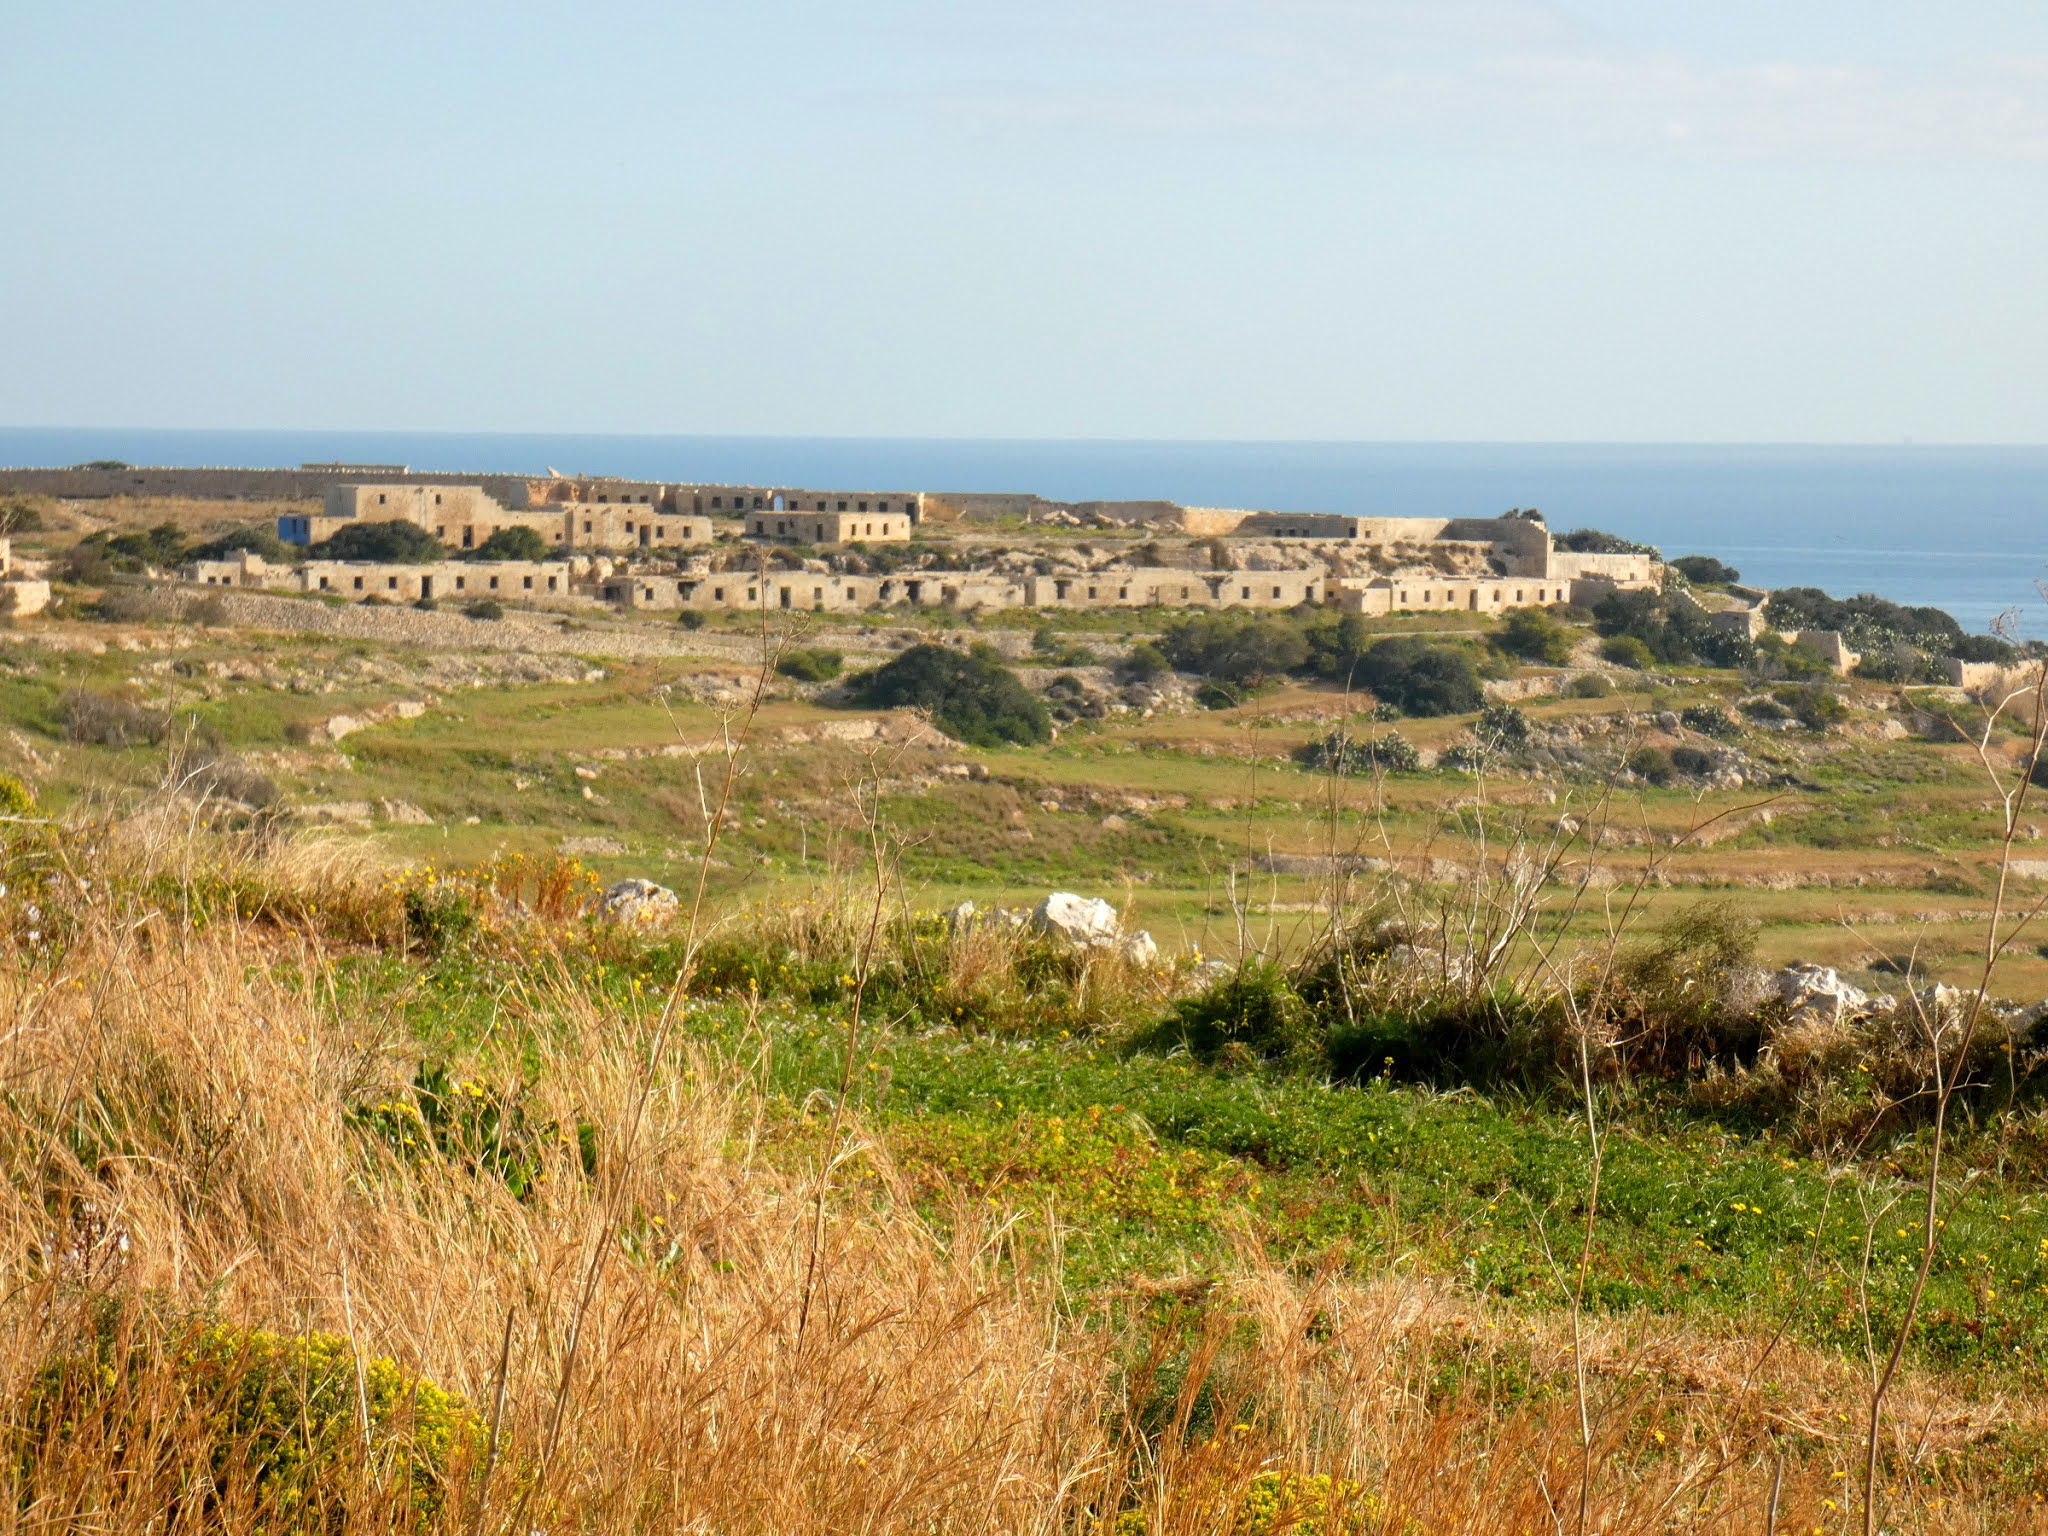 Sincerely Loree: Fort Campbell, Malta